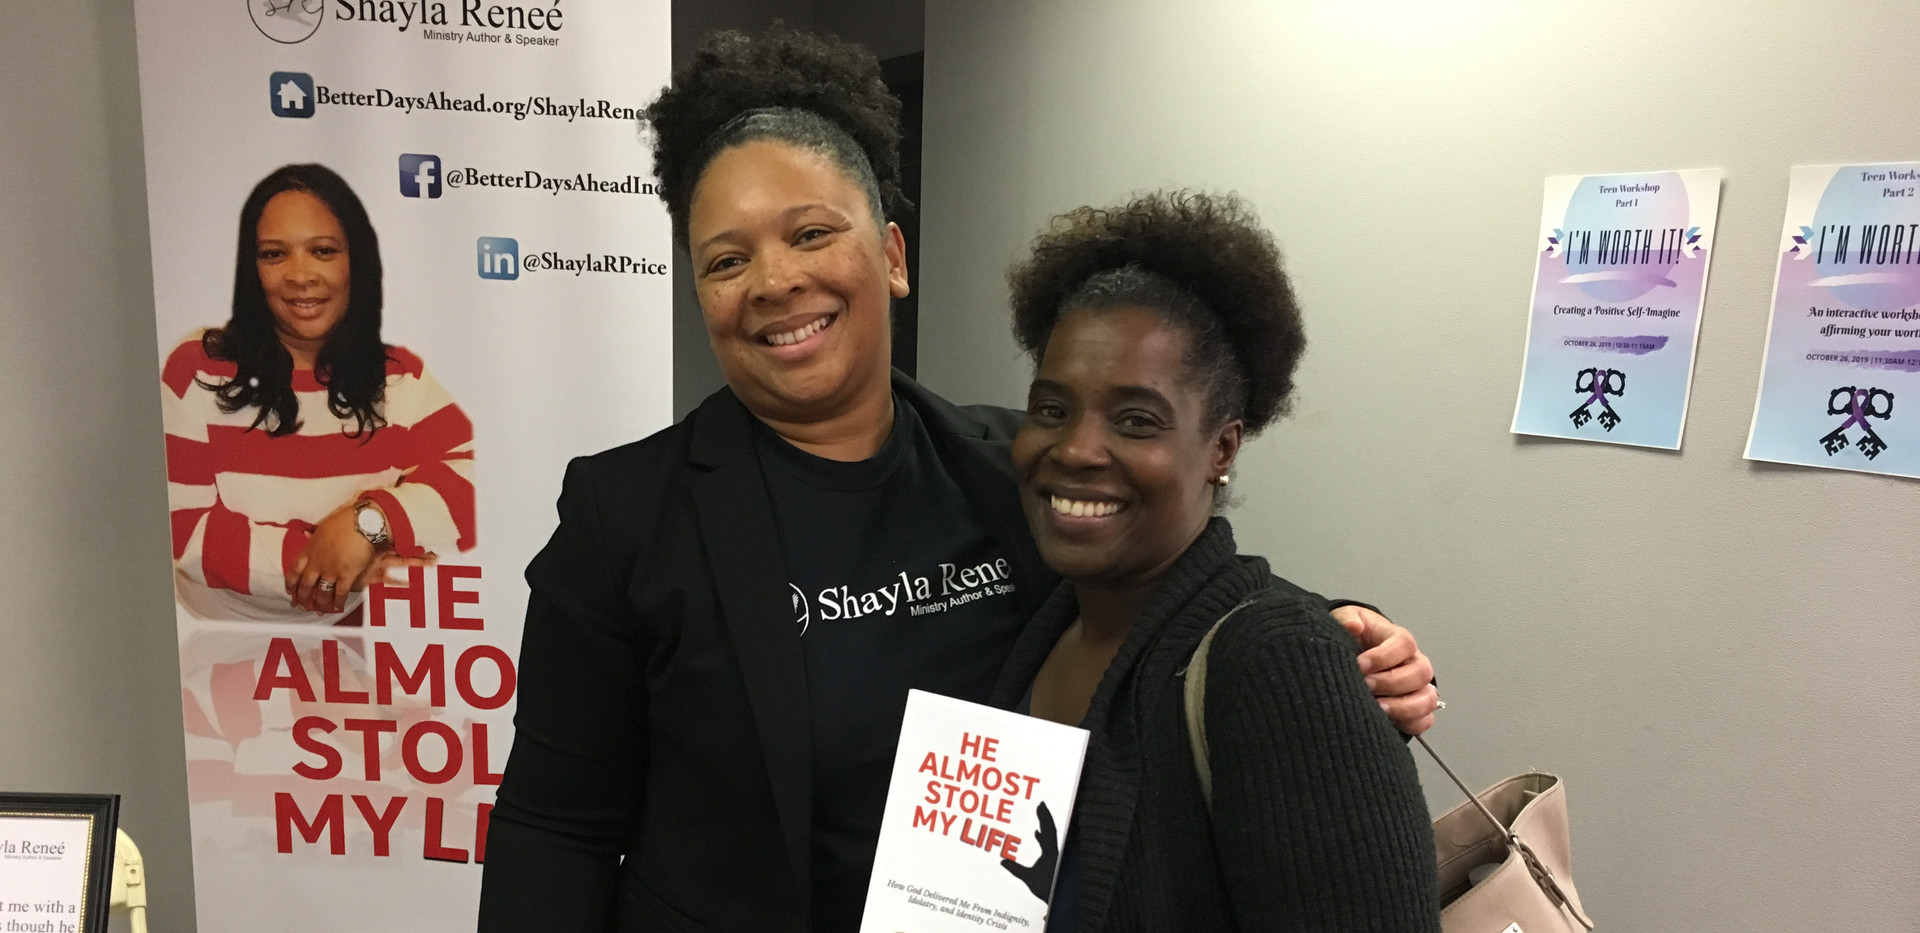 More love for HASML at Redefining HERstory Conference